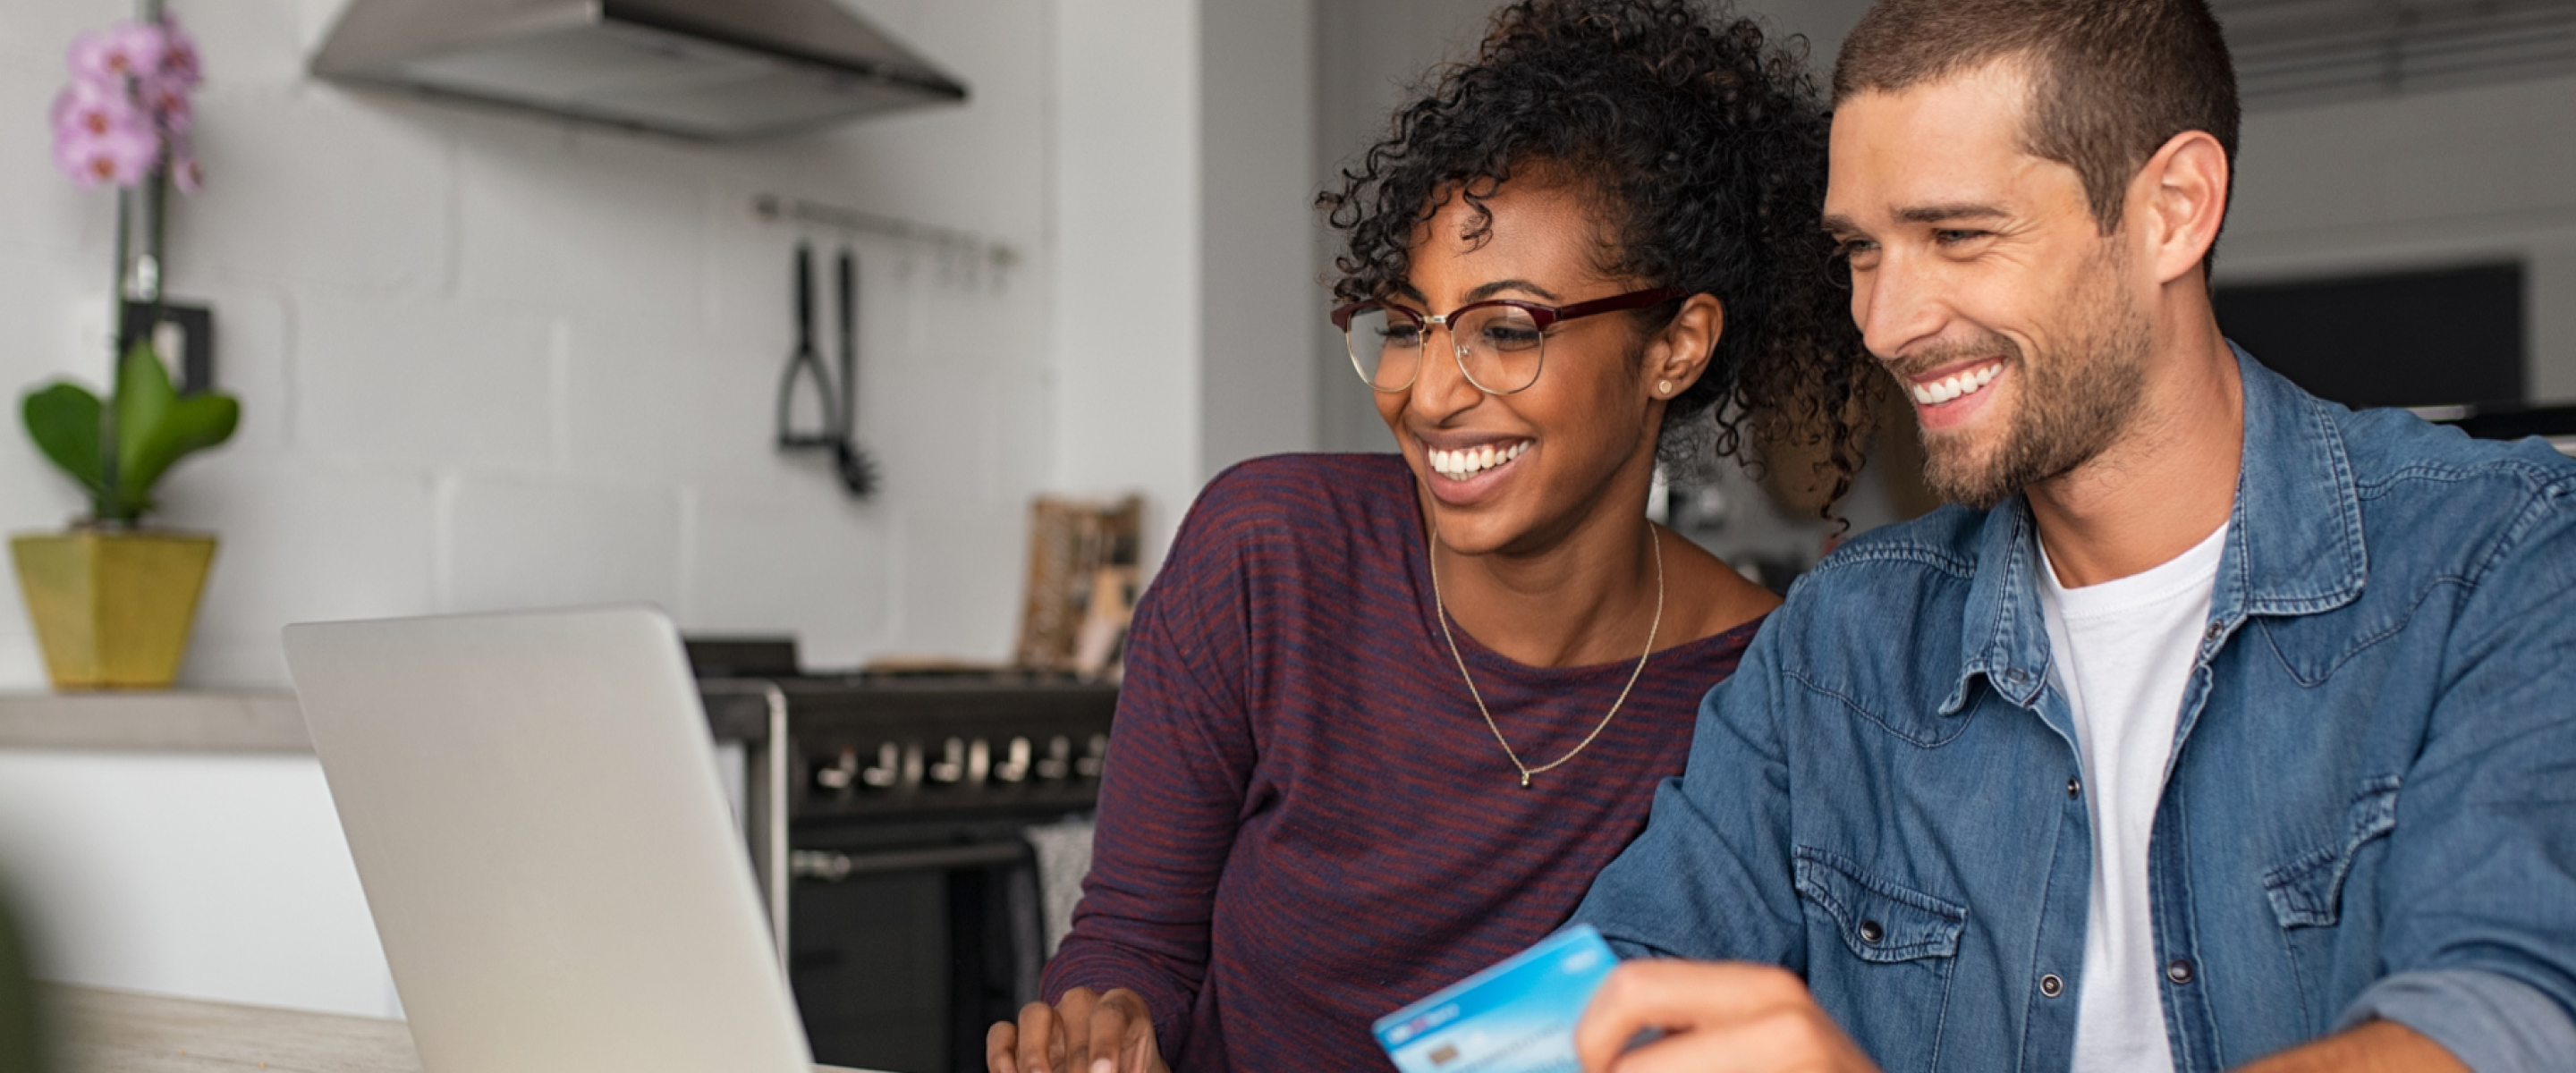 Two people with a debit card looking and smiling at a laptop computer.